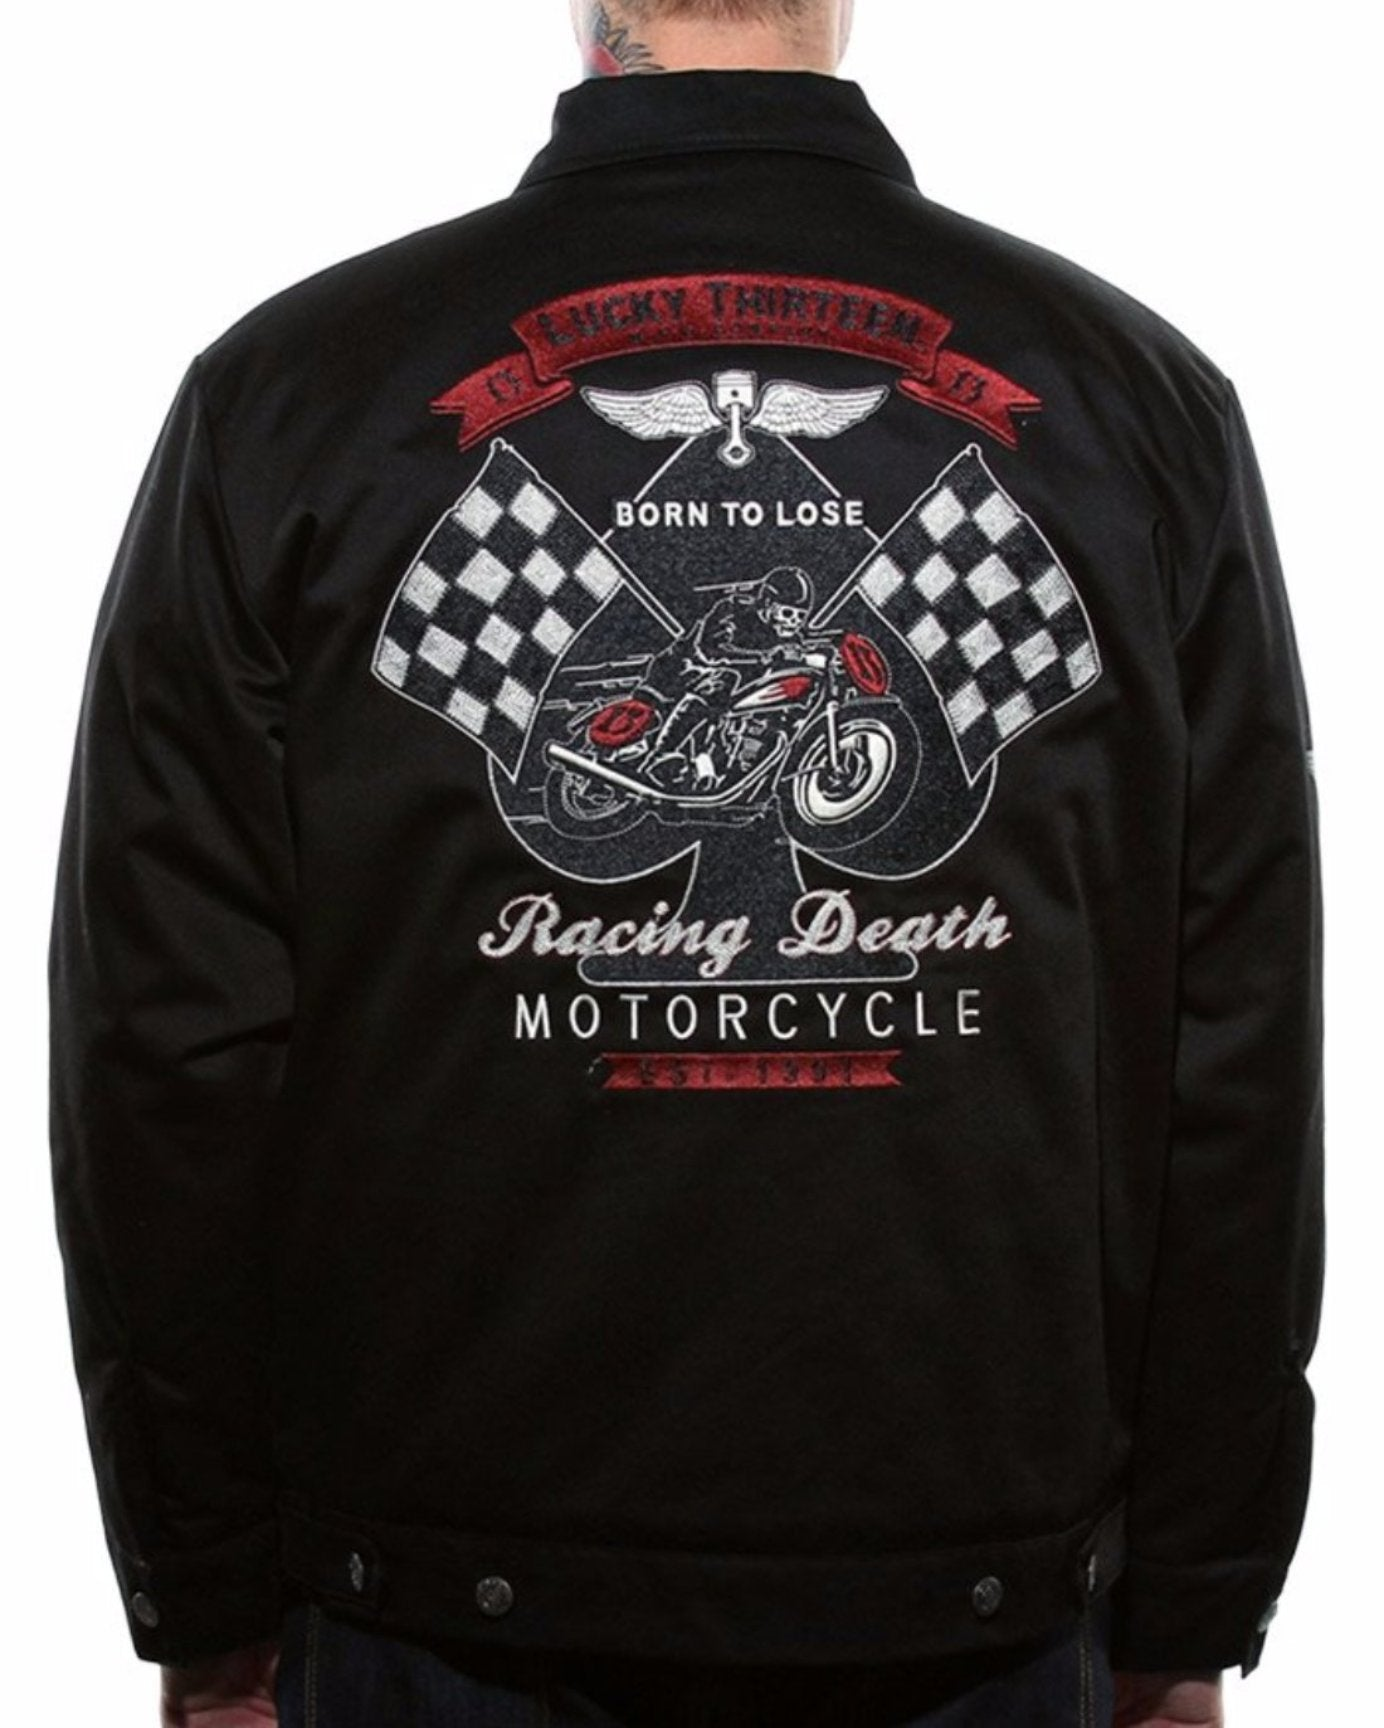 The RACING DEATH Jacket